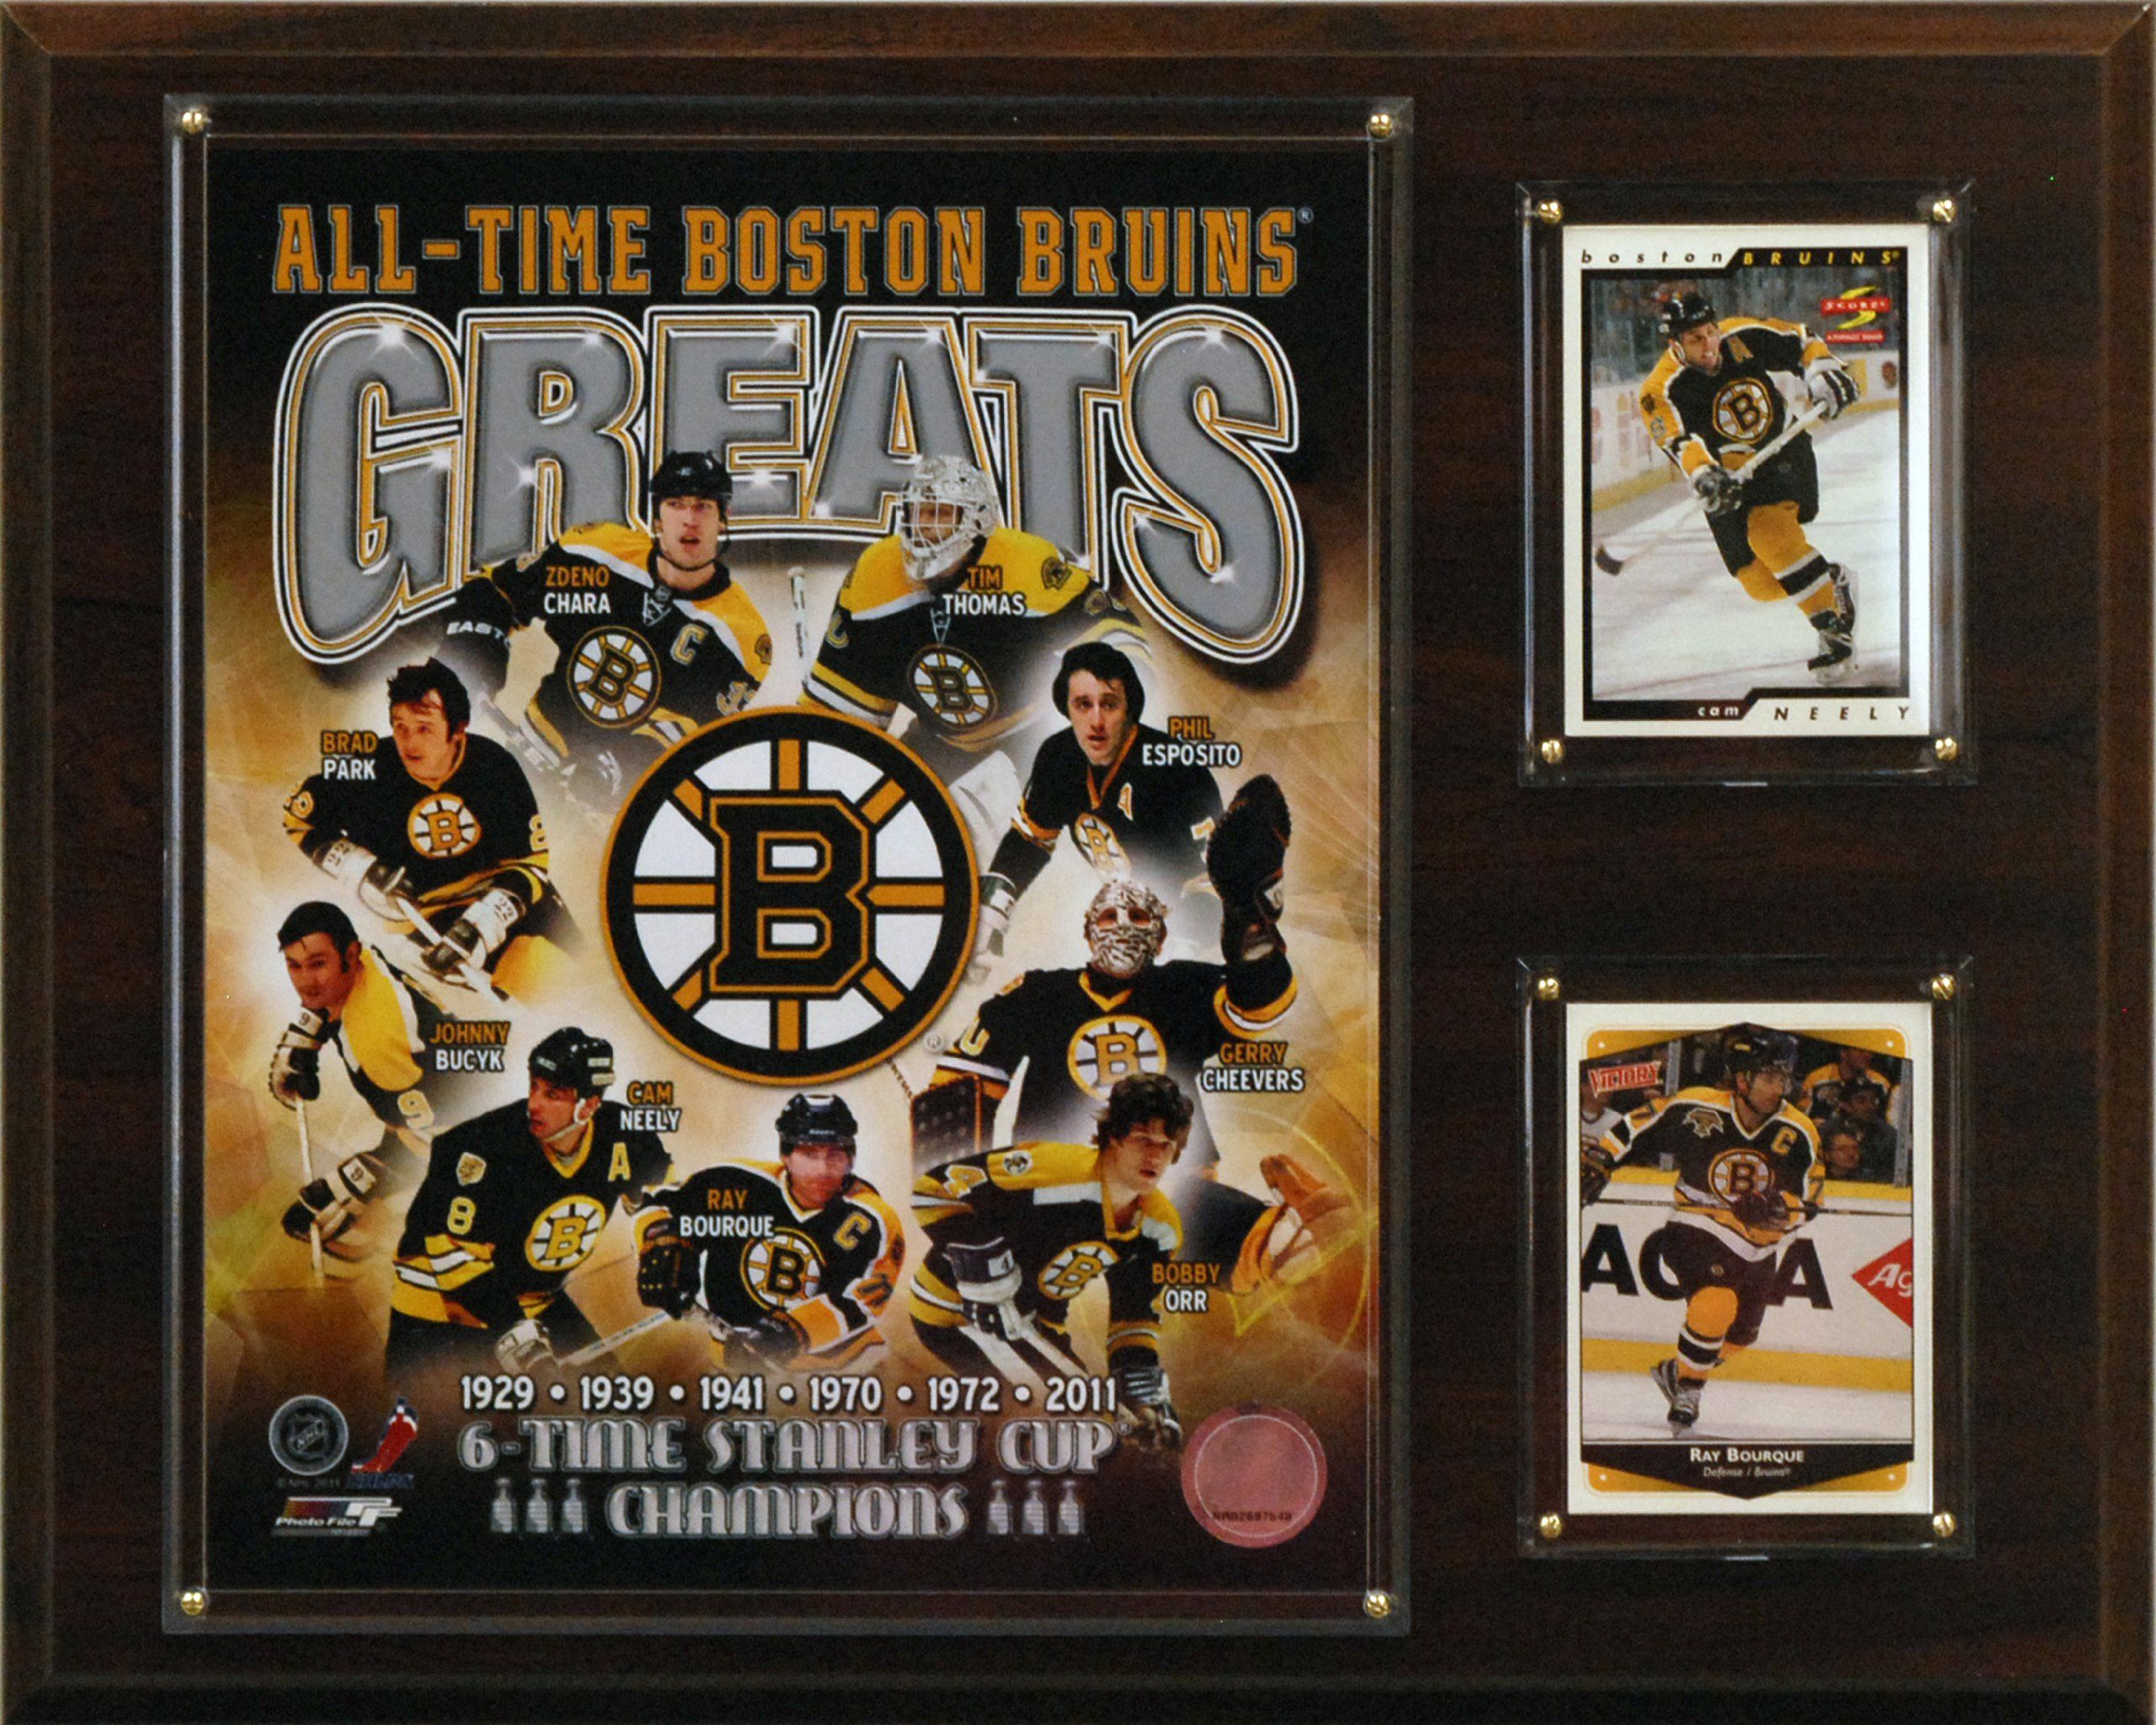 NHL Boston Bruins All-Time Greats Photo Plaque by C&I Collectables